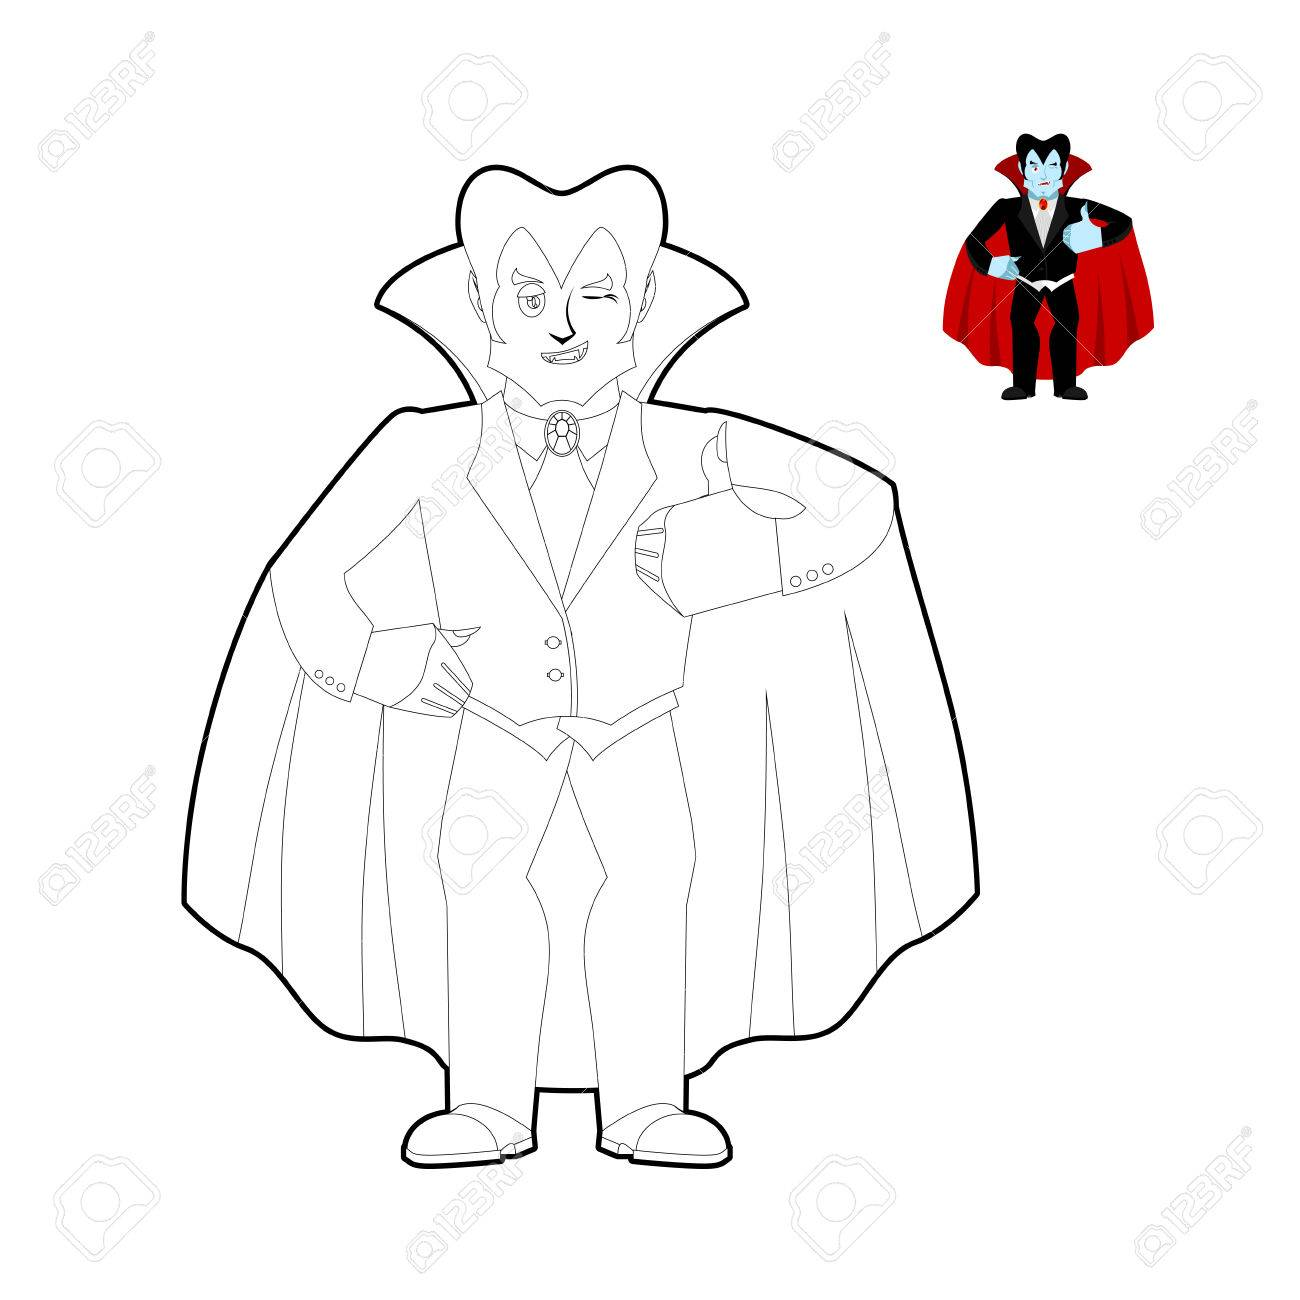 Printable Dracula Coloring Page for Kids   Halloween coloring ...   1300x1300